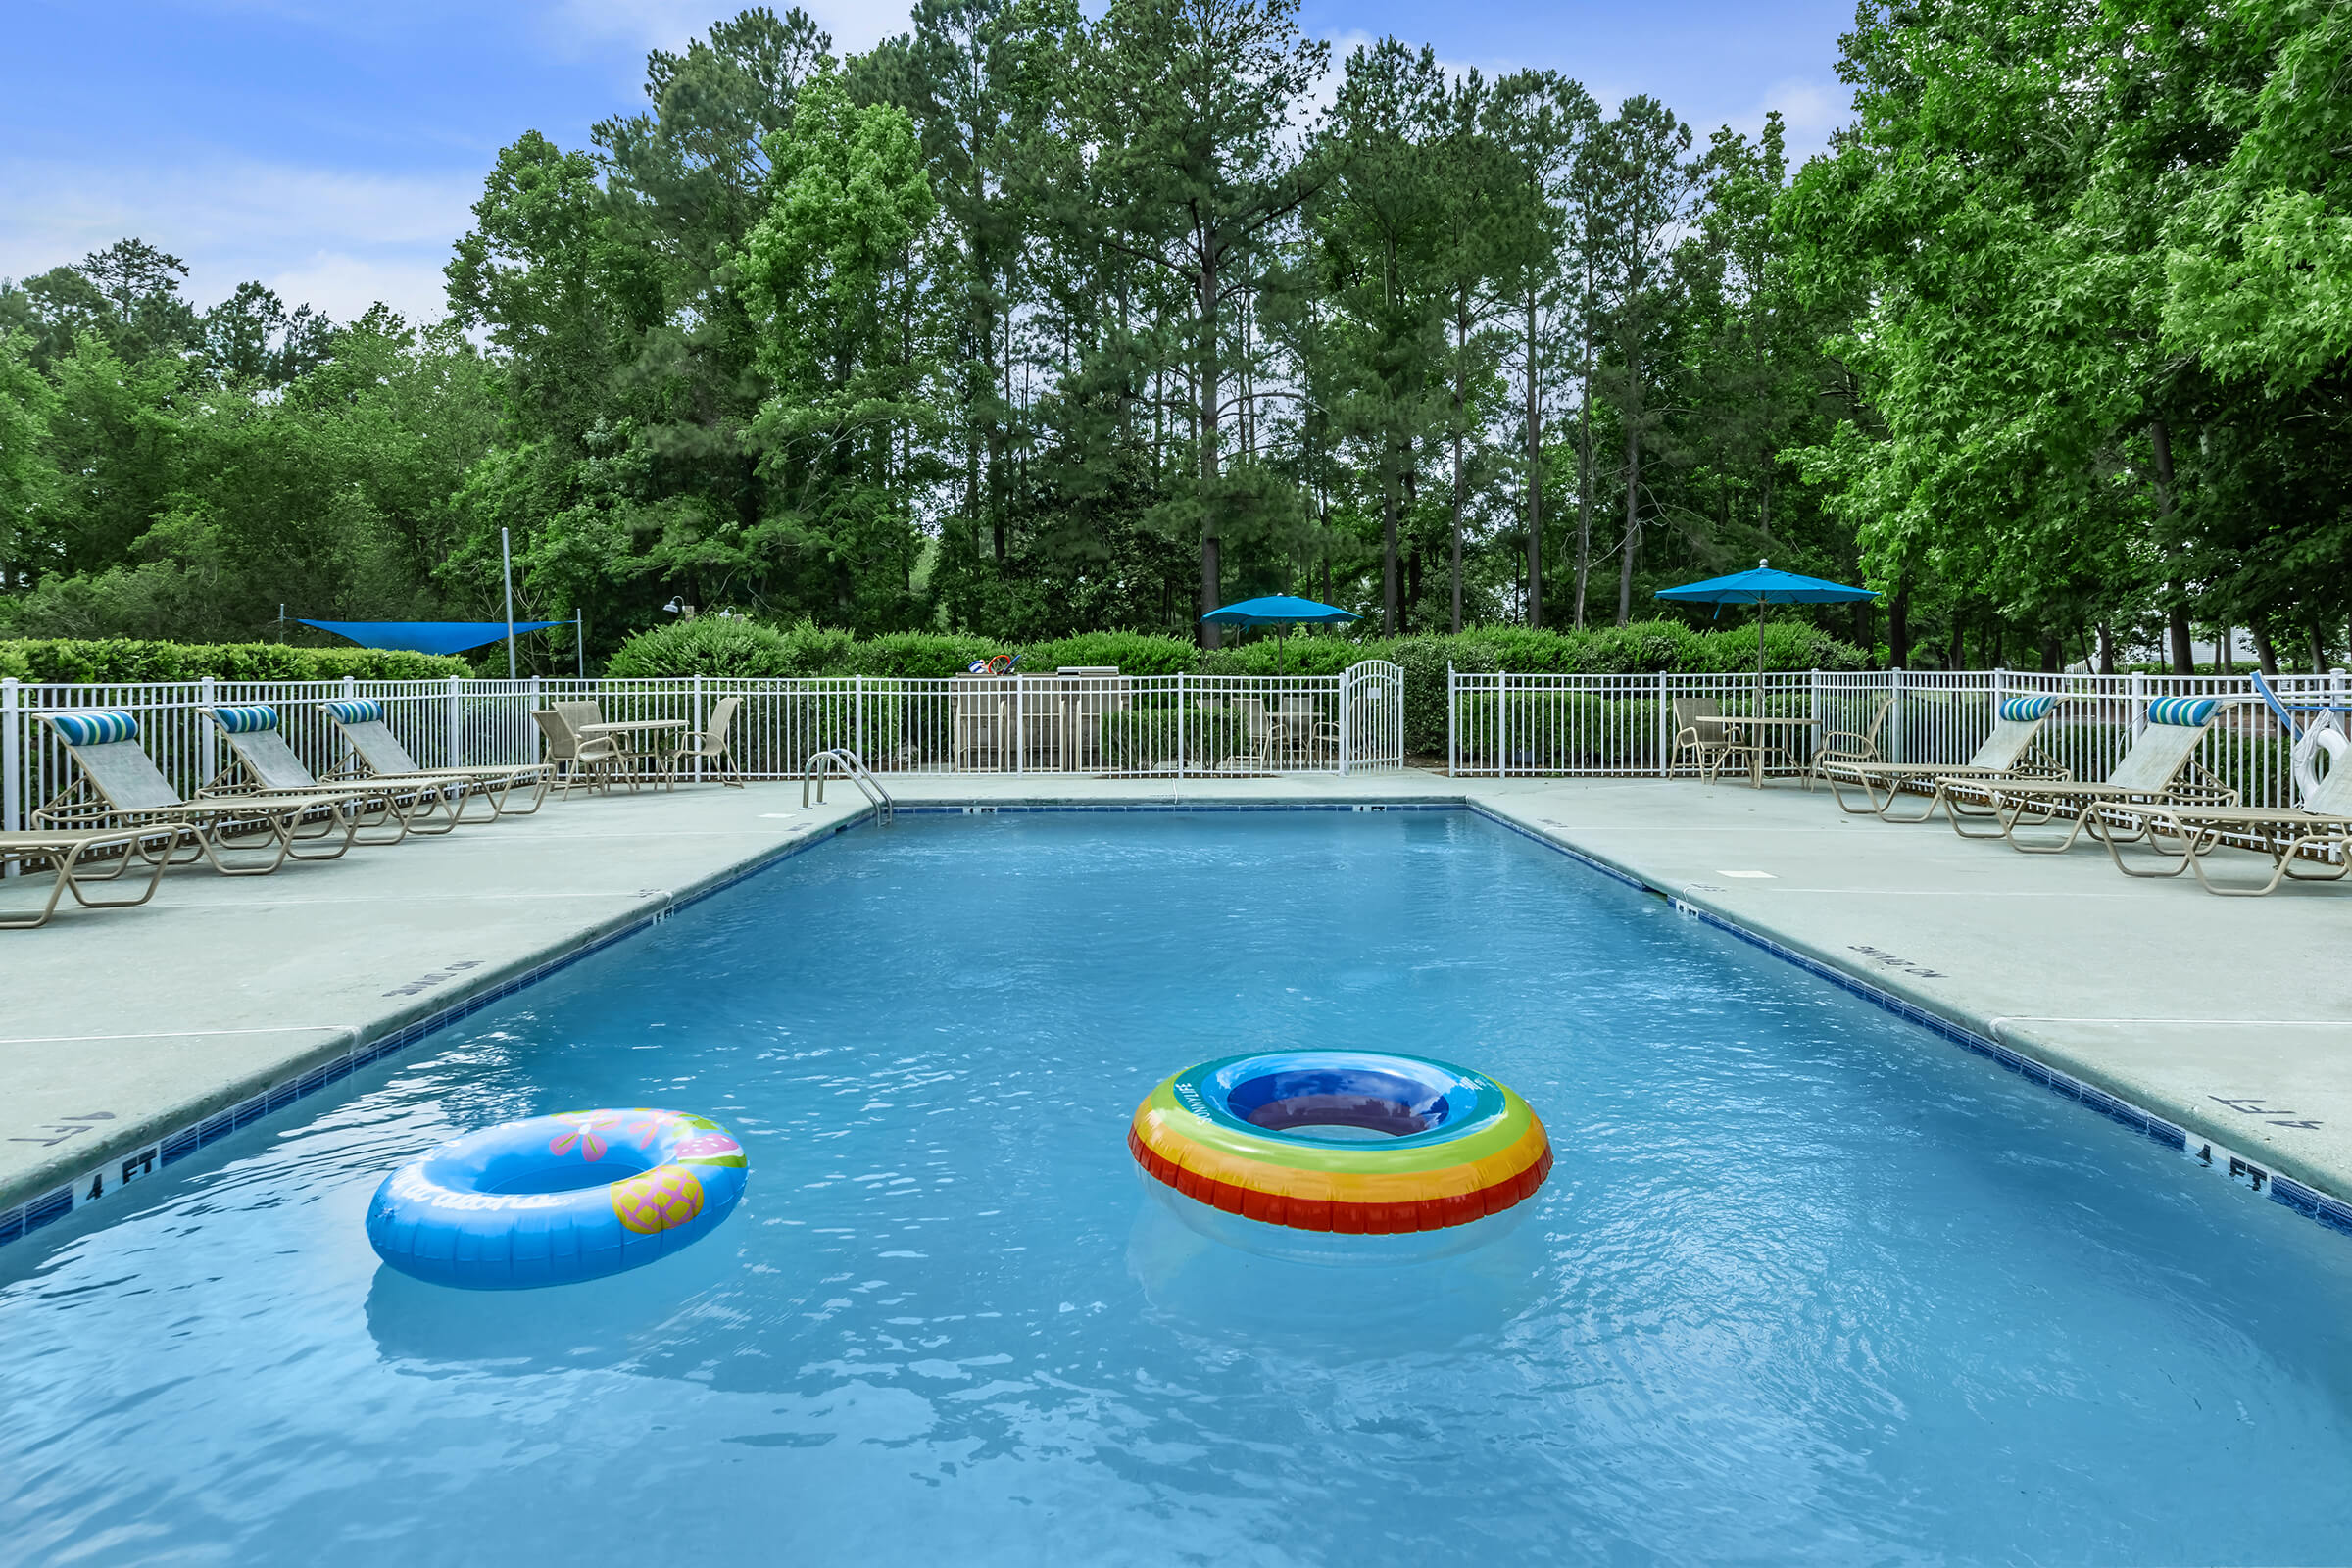 SEE WHAT YOU CAN GRILL UP